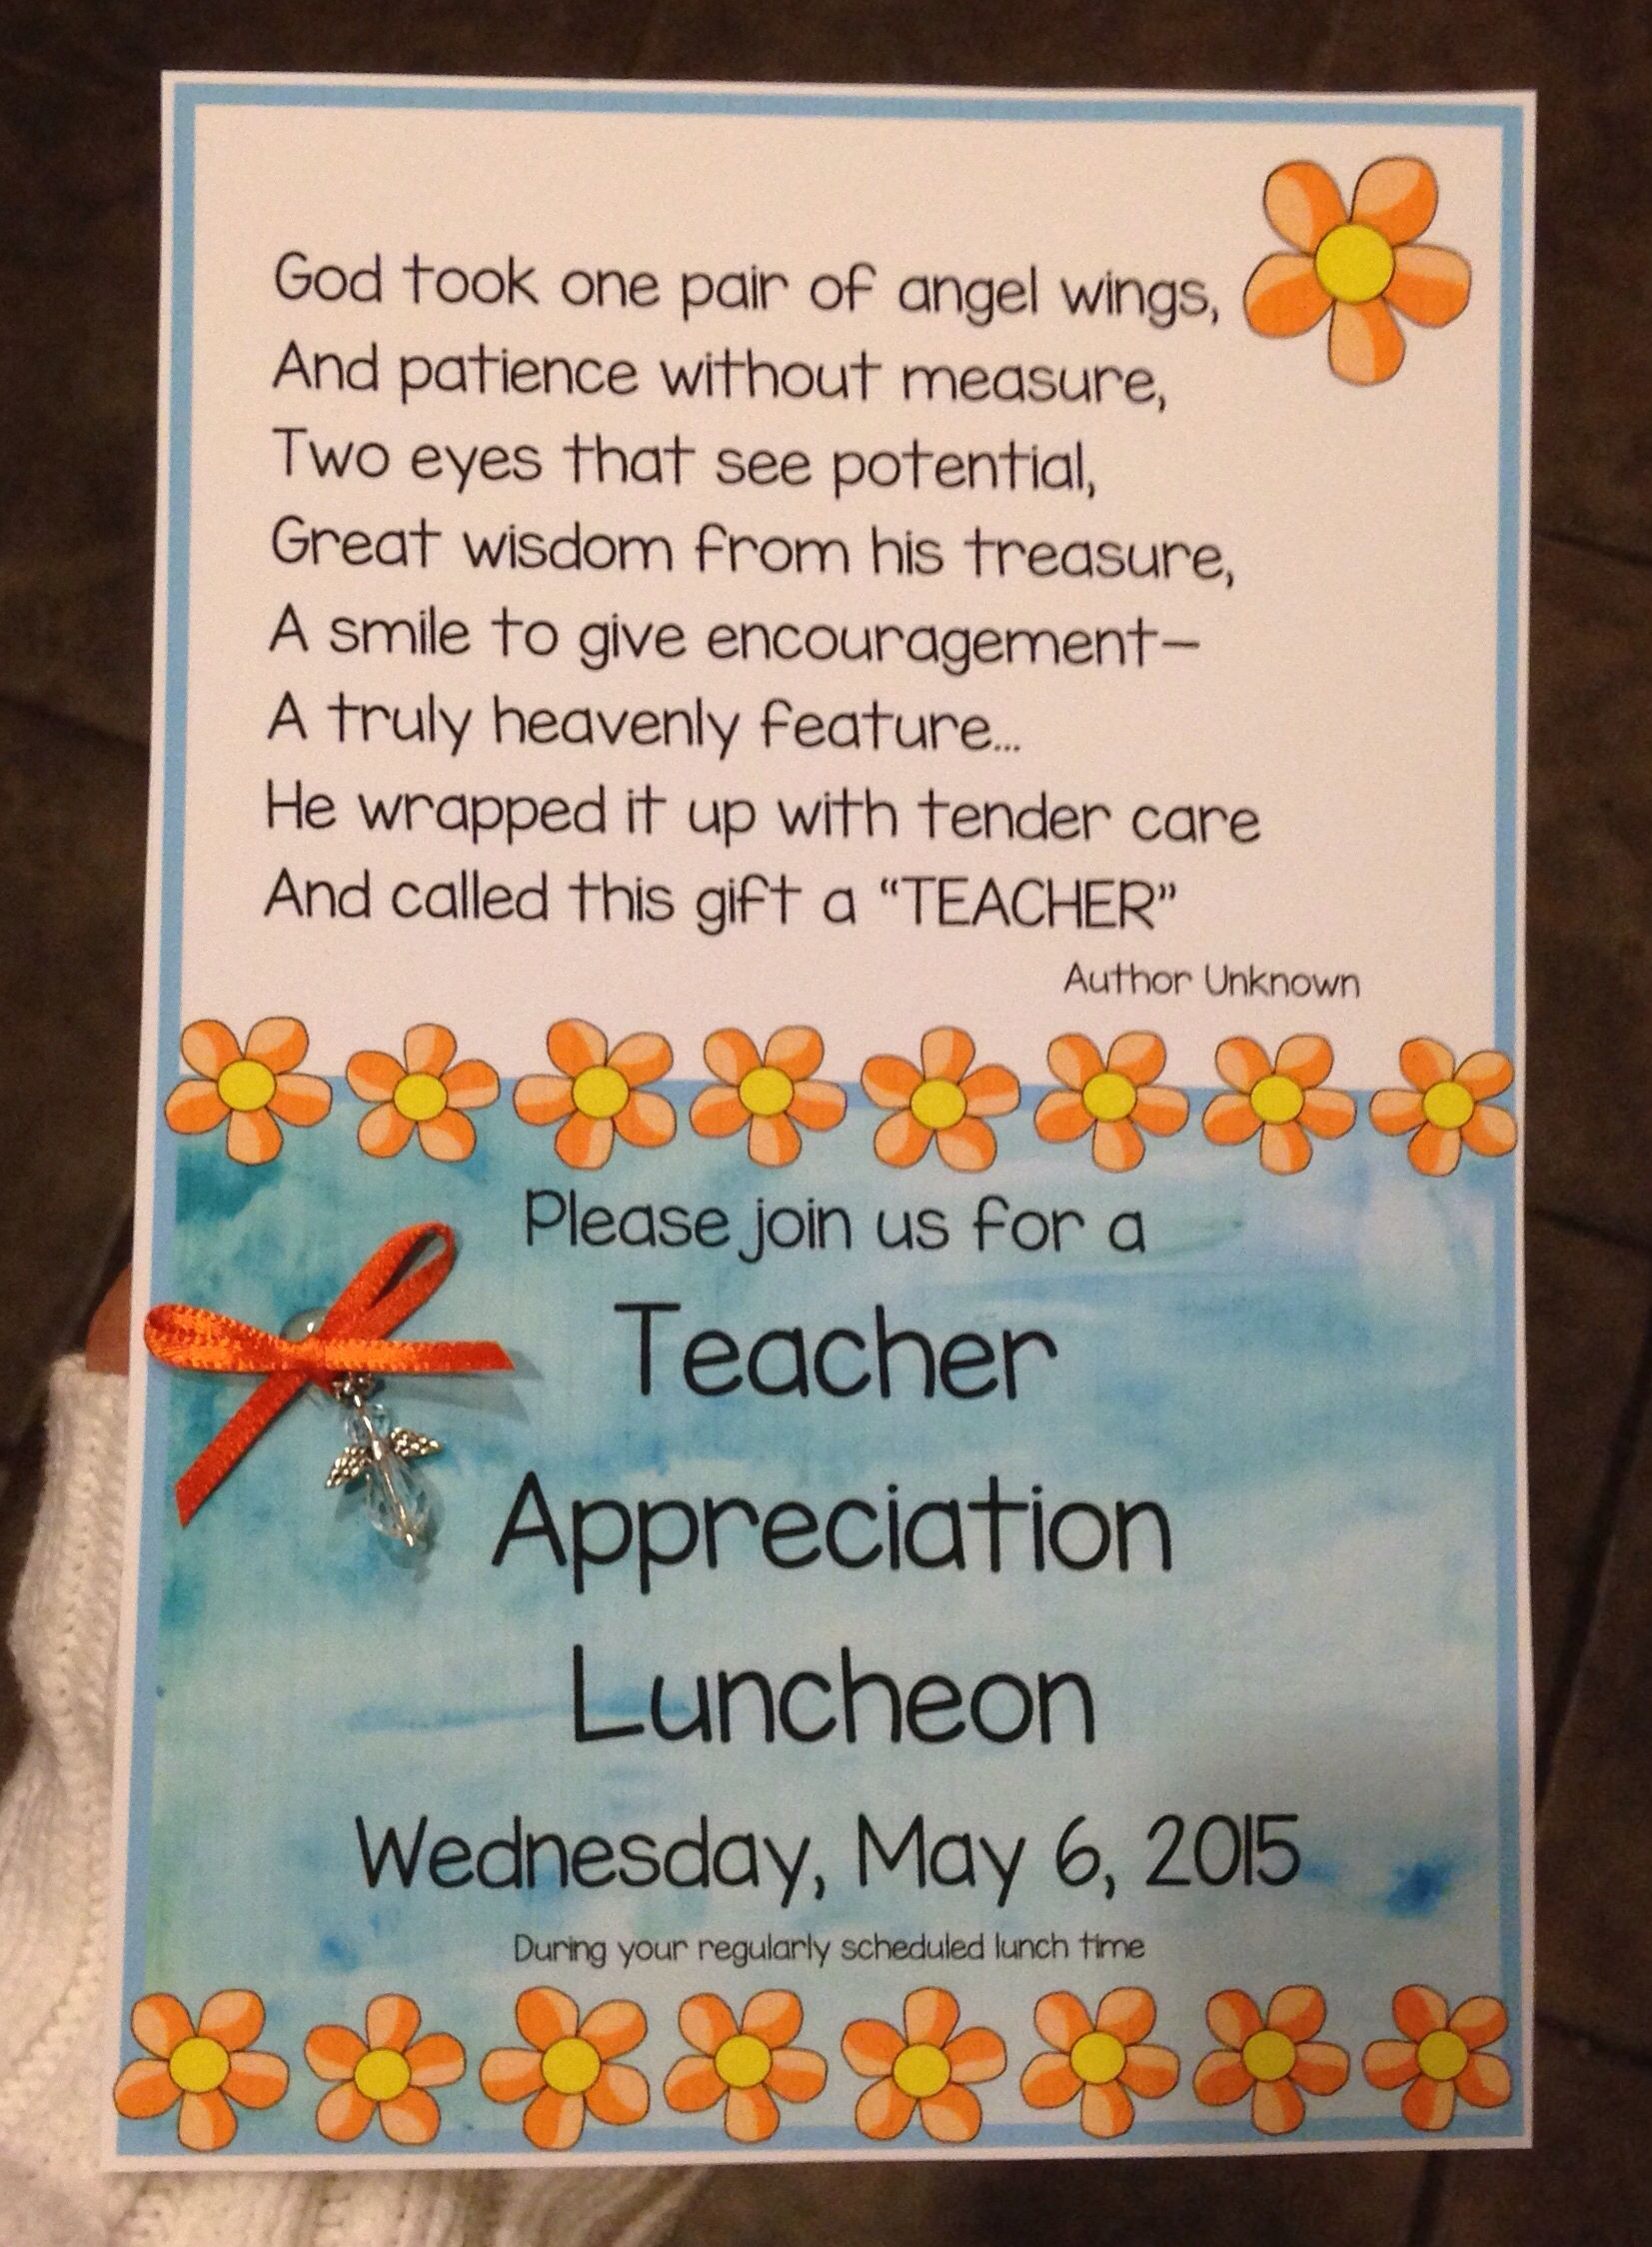 Teacher appreciation luncheon invitation pinteres teacher appreciation luncheon invitation more stopboris Images